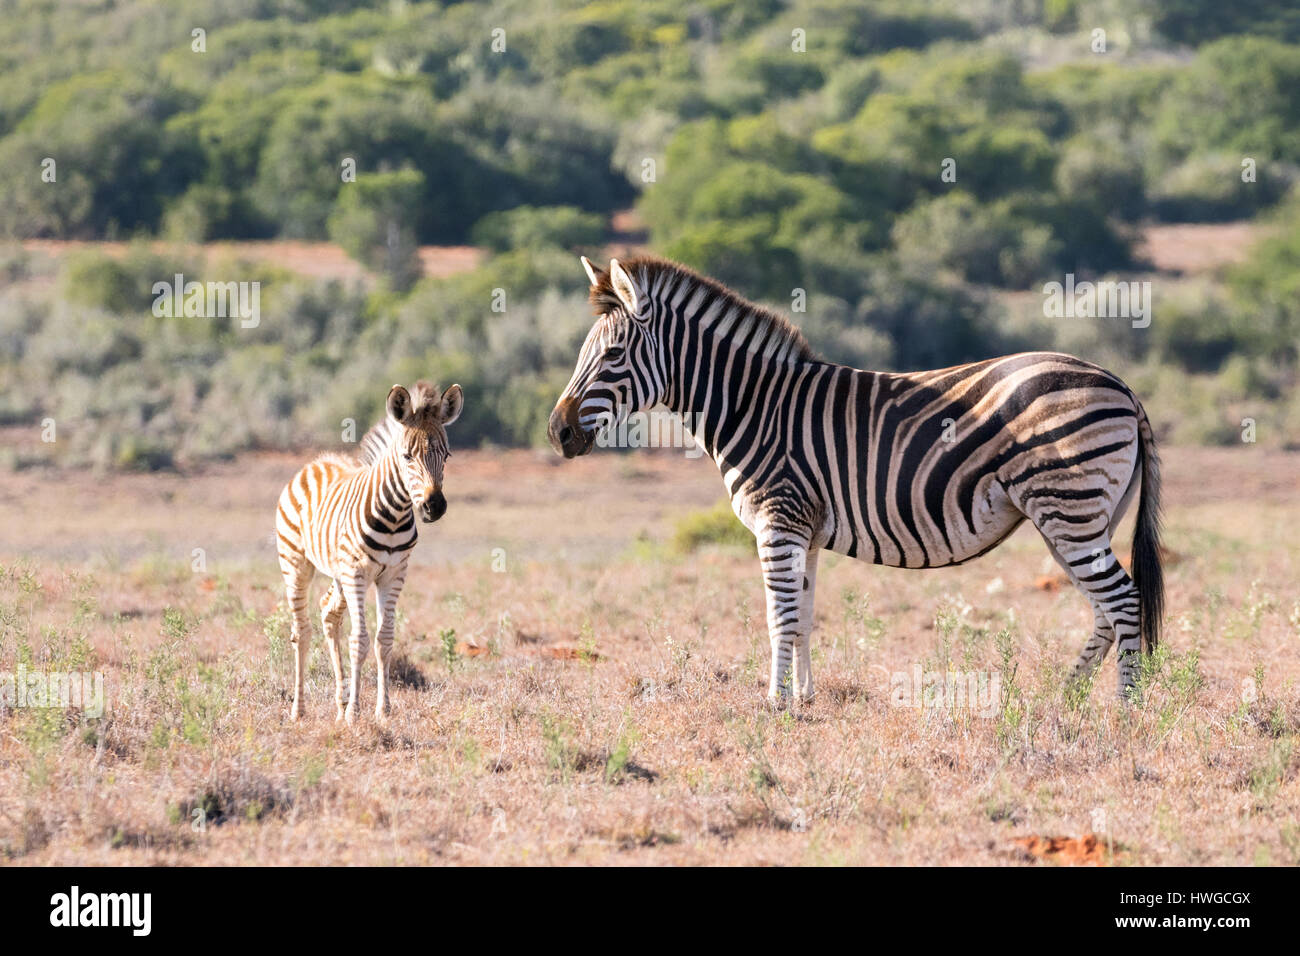 Zebra mother and baby, adult and foal,  Equus quagga; South Africa - Stock Image